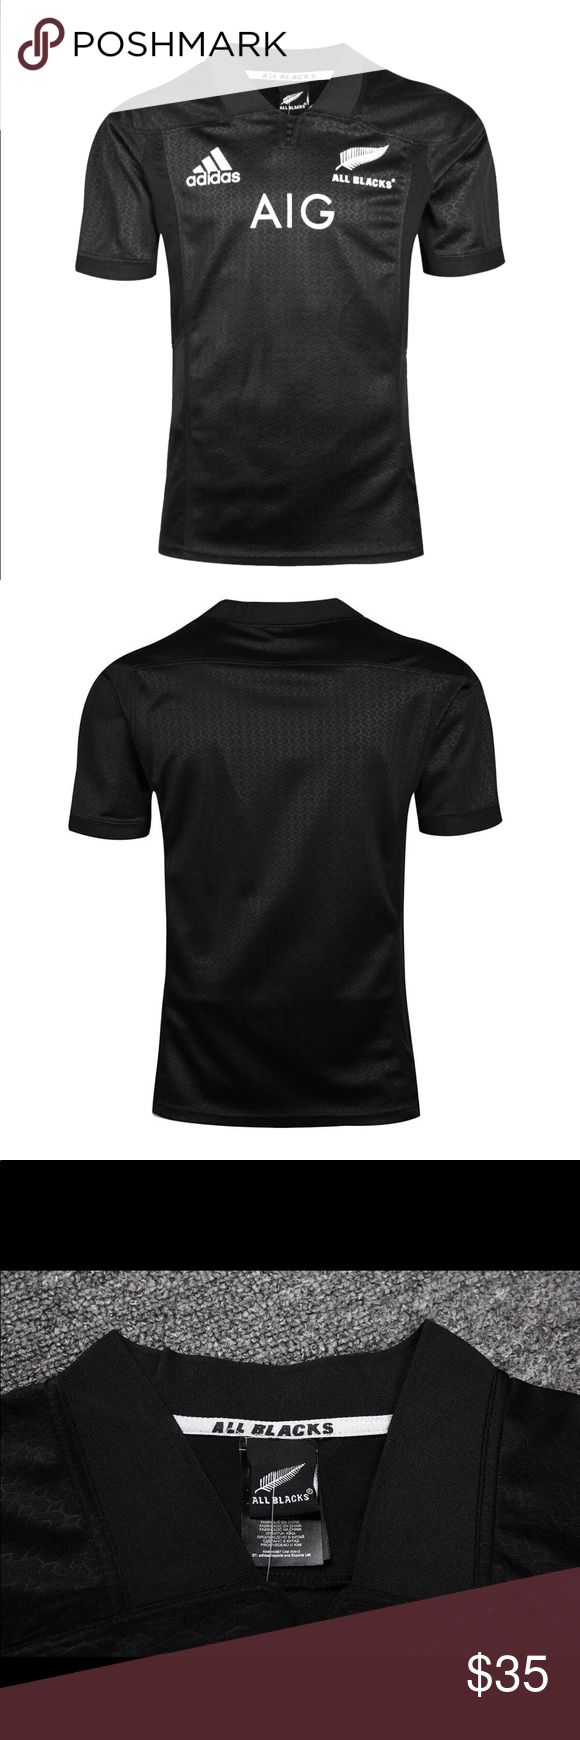 2016-2017 All Blacks Rugby Jersey All Blacks Home Jersey. A replica of the jersey the All Blacks wear when they play home games. Designed with the aim to help the team maintain their number one position in world rugby!  •Made from 100% polyester climalite  •Features a ribbed collar for improved comfort and an   adaptive fit  •High density printed All Blacks, adidas, and AIG logos returning to white in colour adidas Shirts Polos